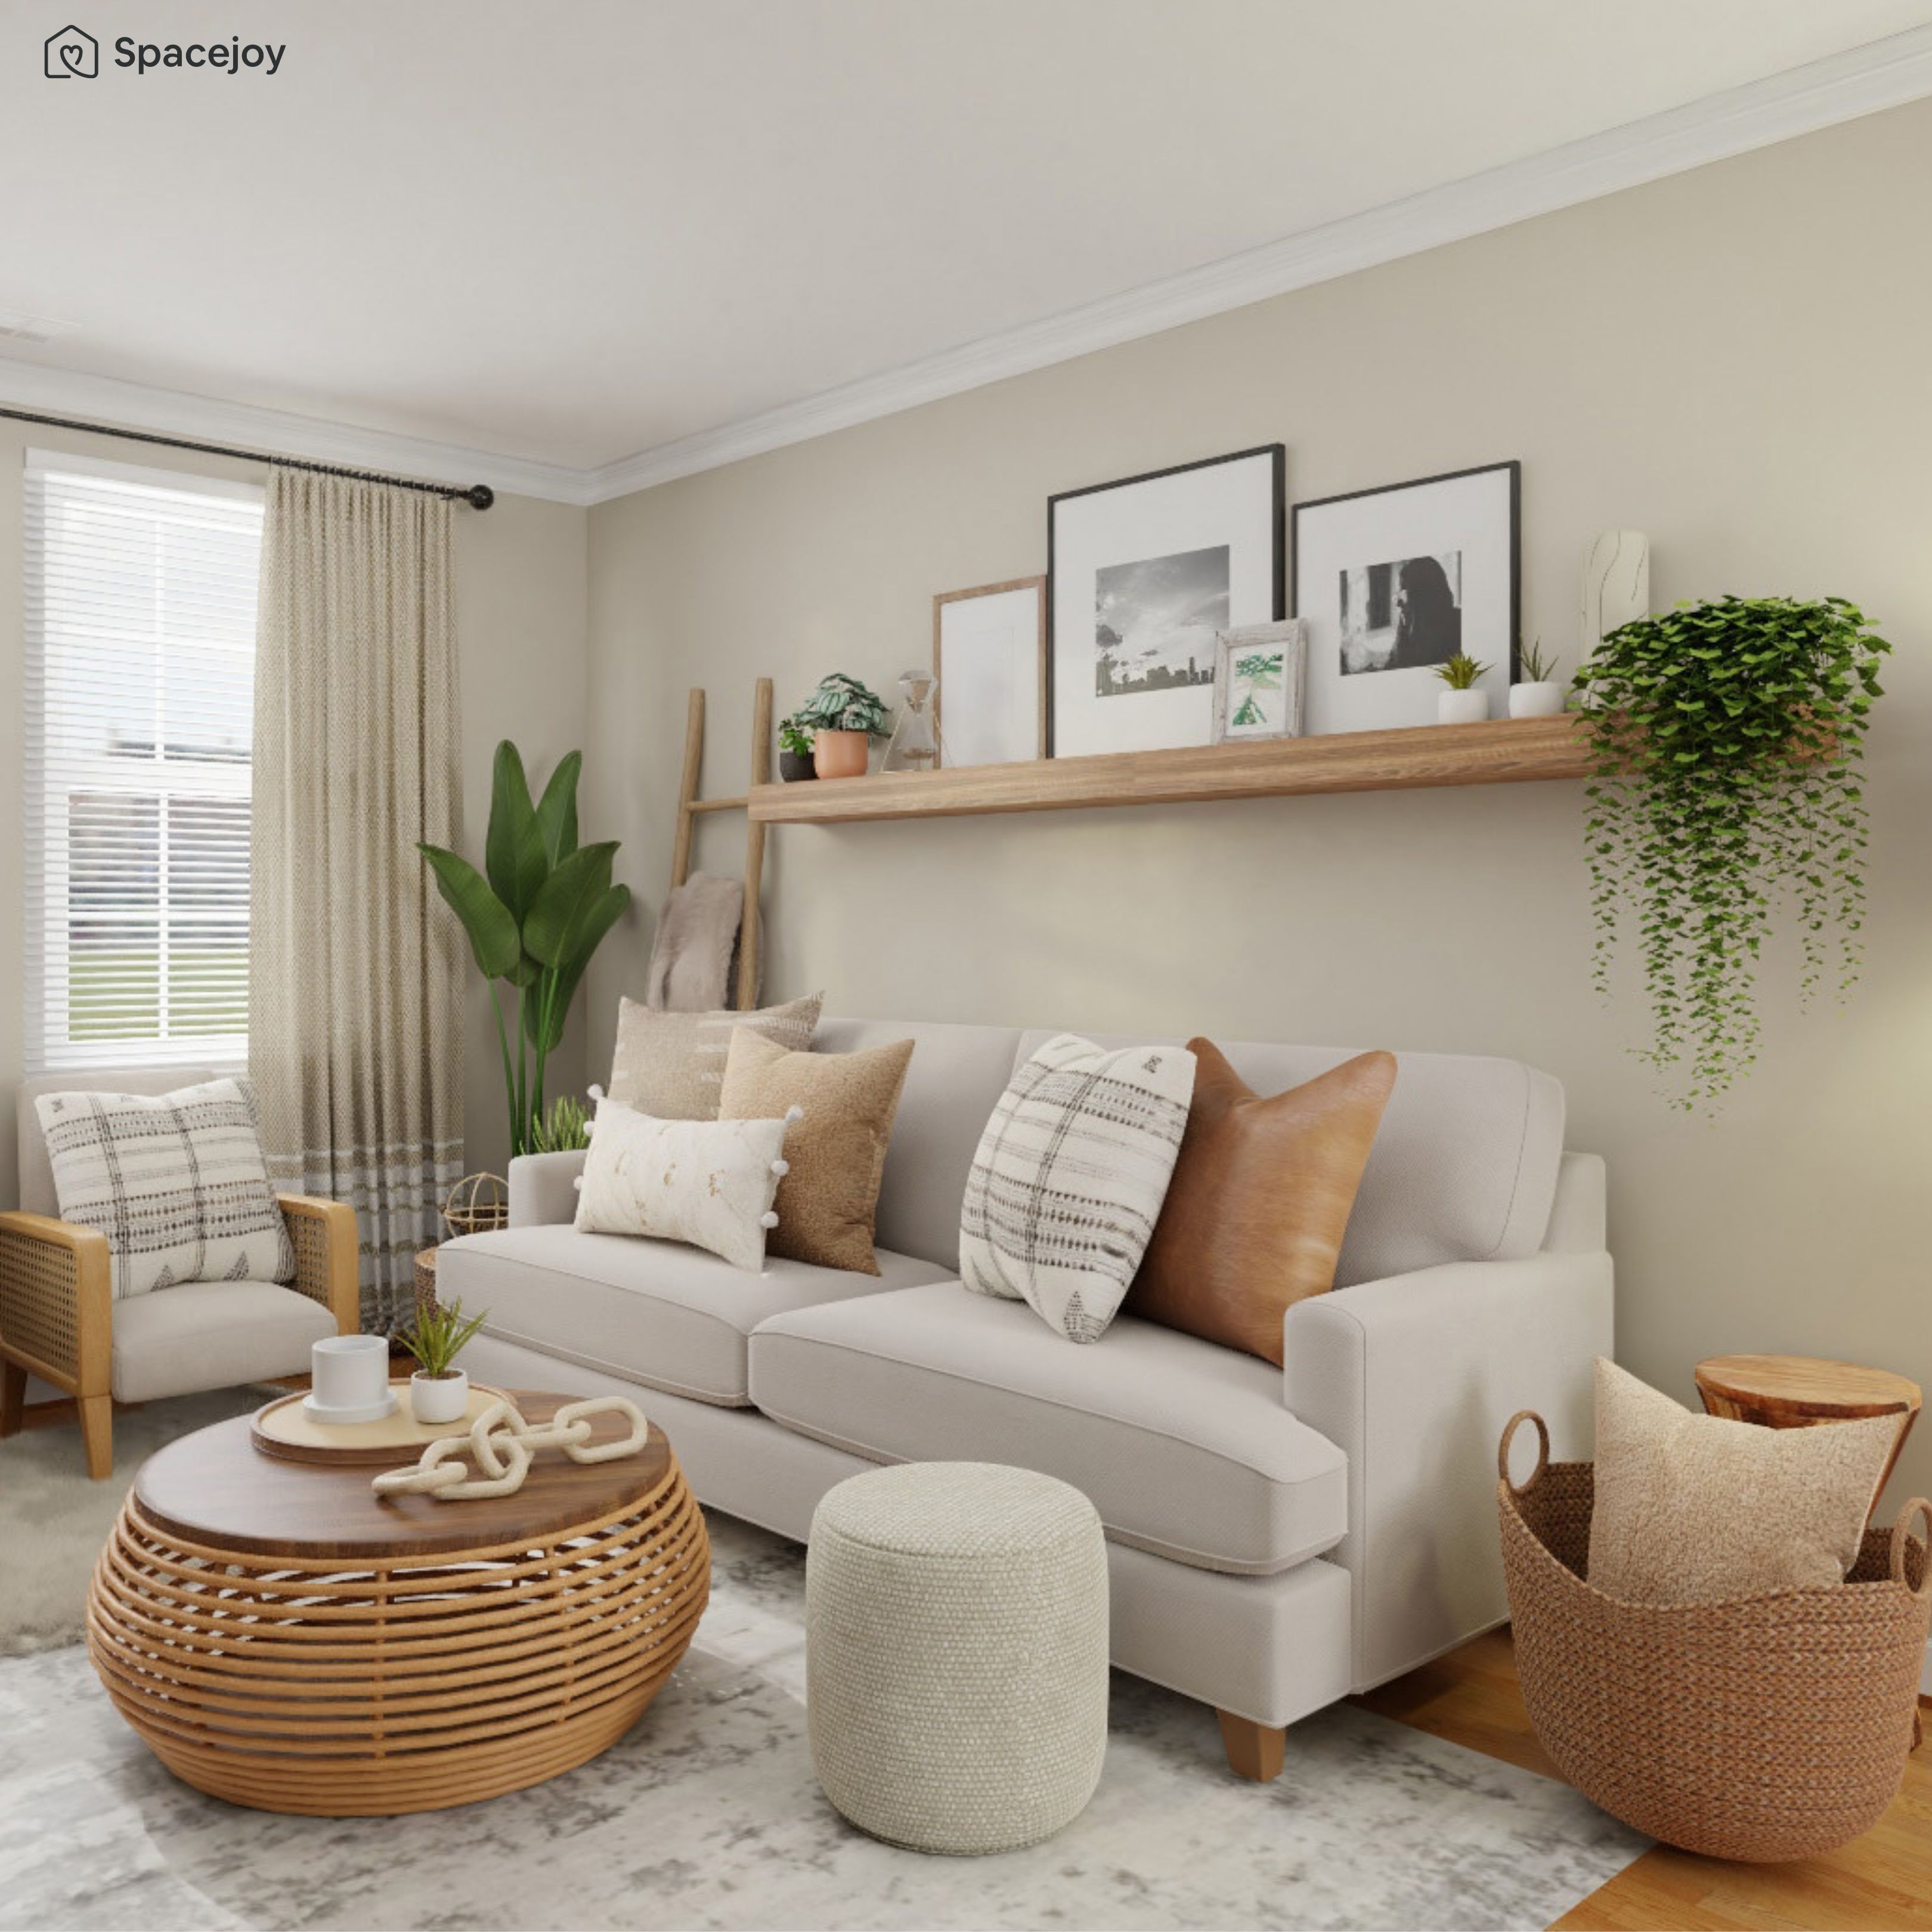 A serene living room design idea with a boho touch and natural elements.